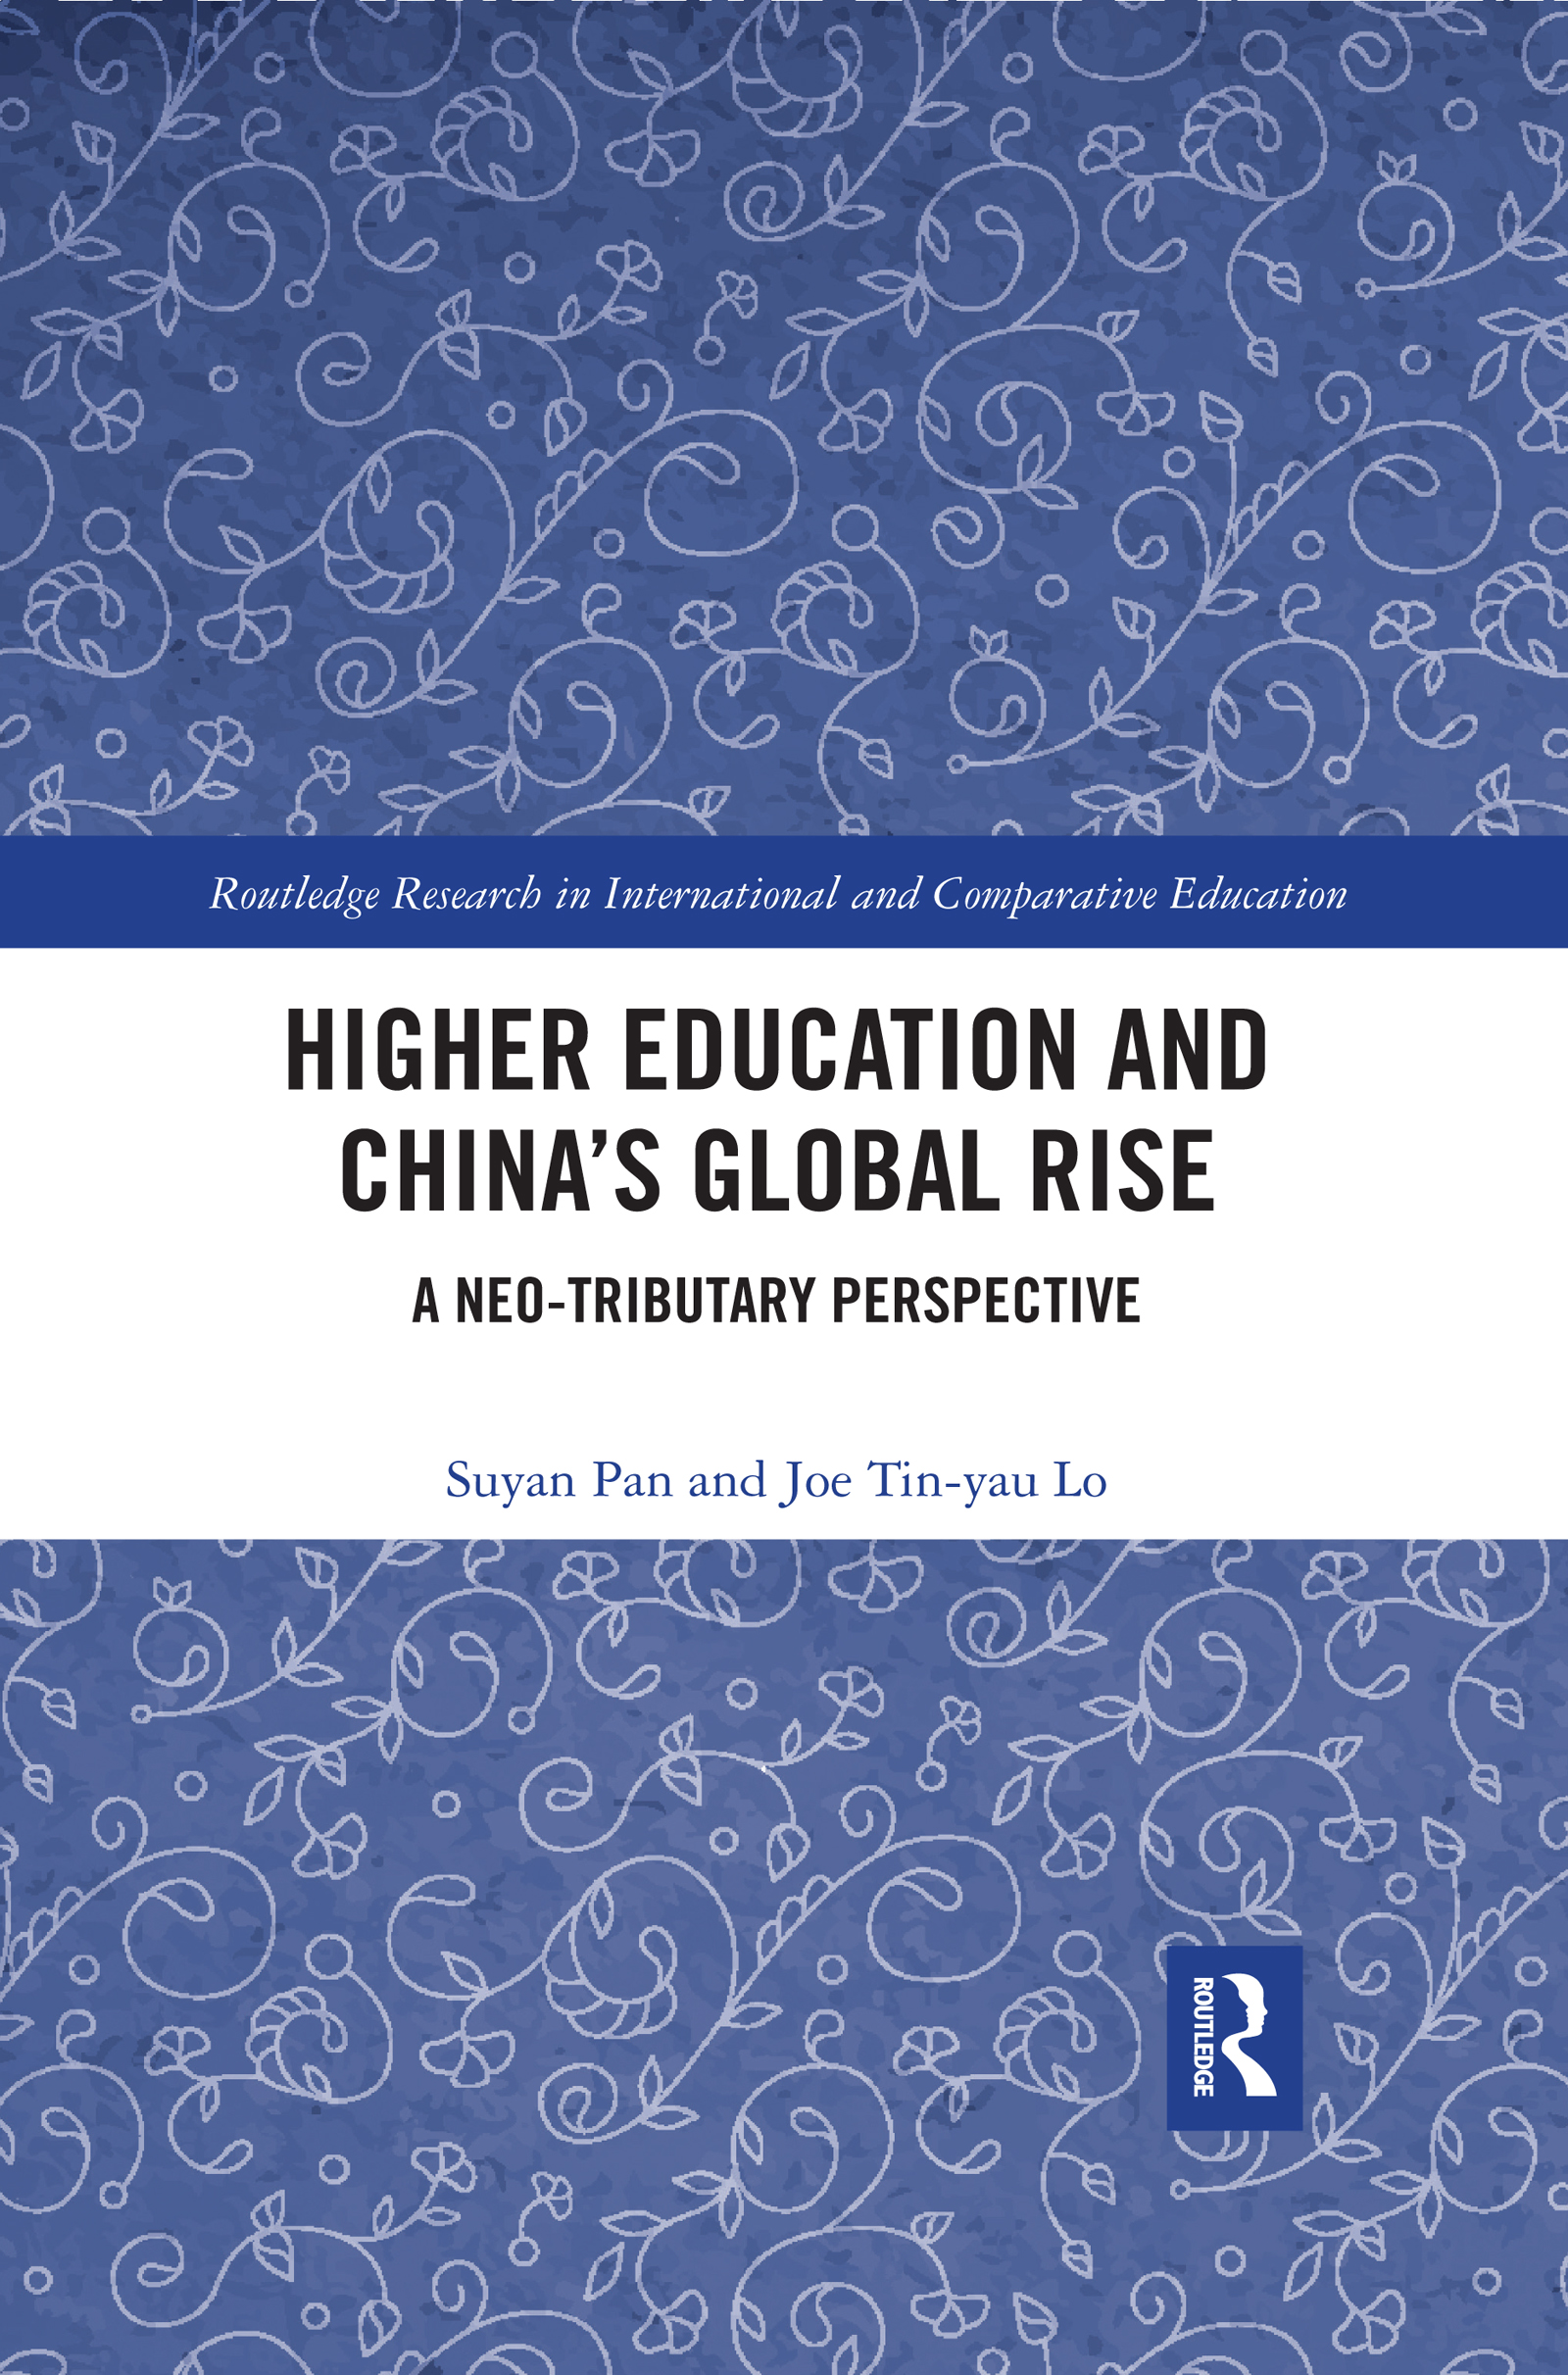 Higher Education and China's Global Rise